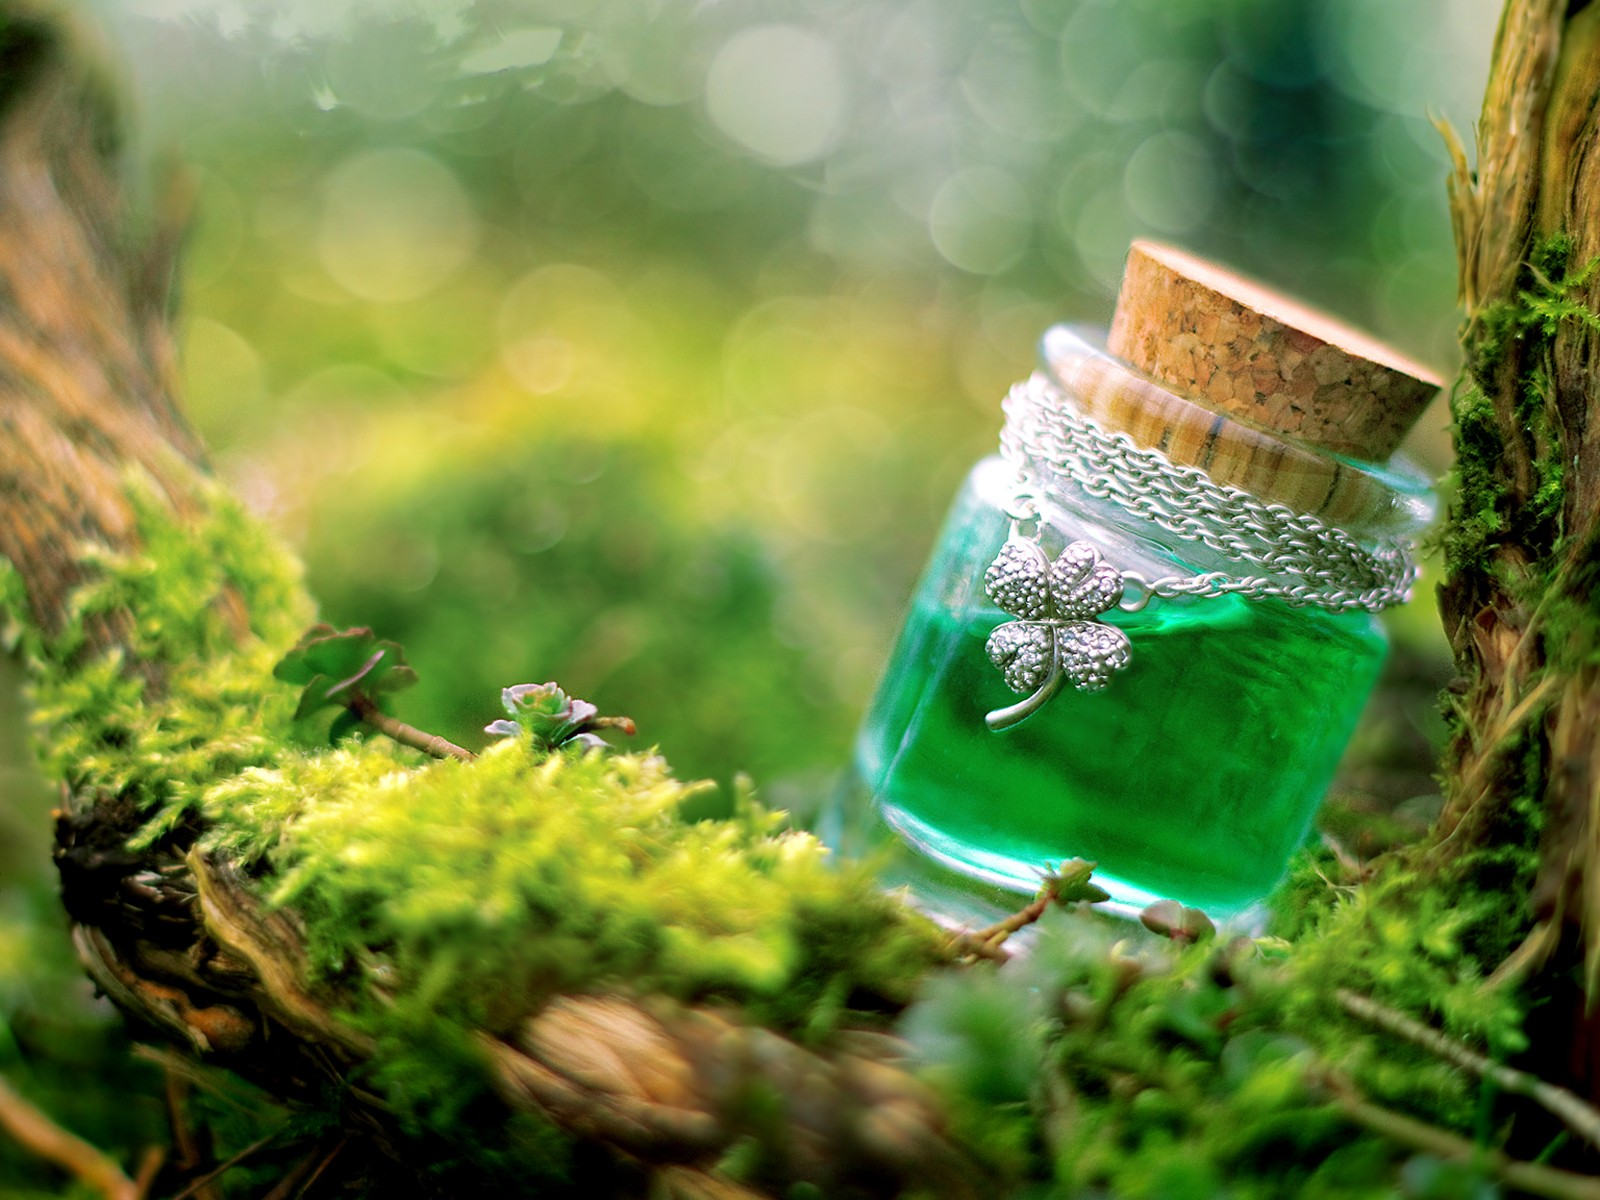 of Luck Wallpapers Potion of Luck HD Wallpapers Potion of Luck 1600x1200